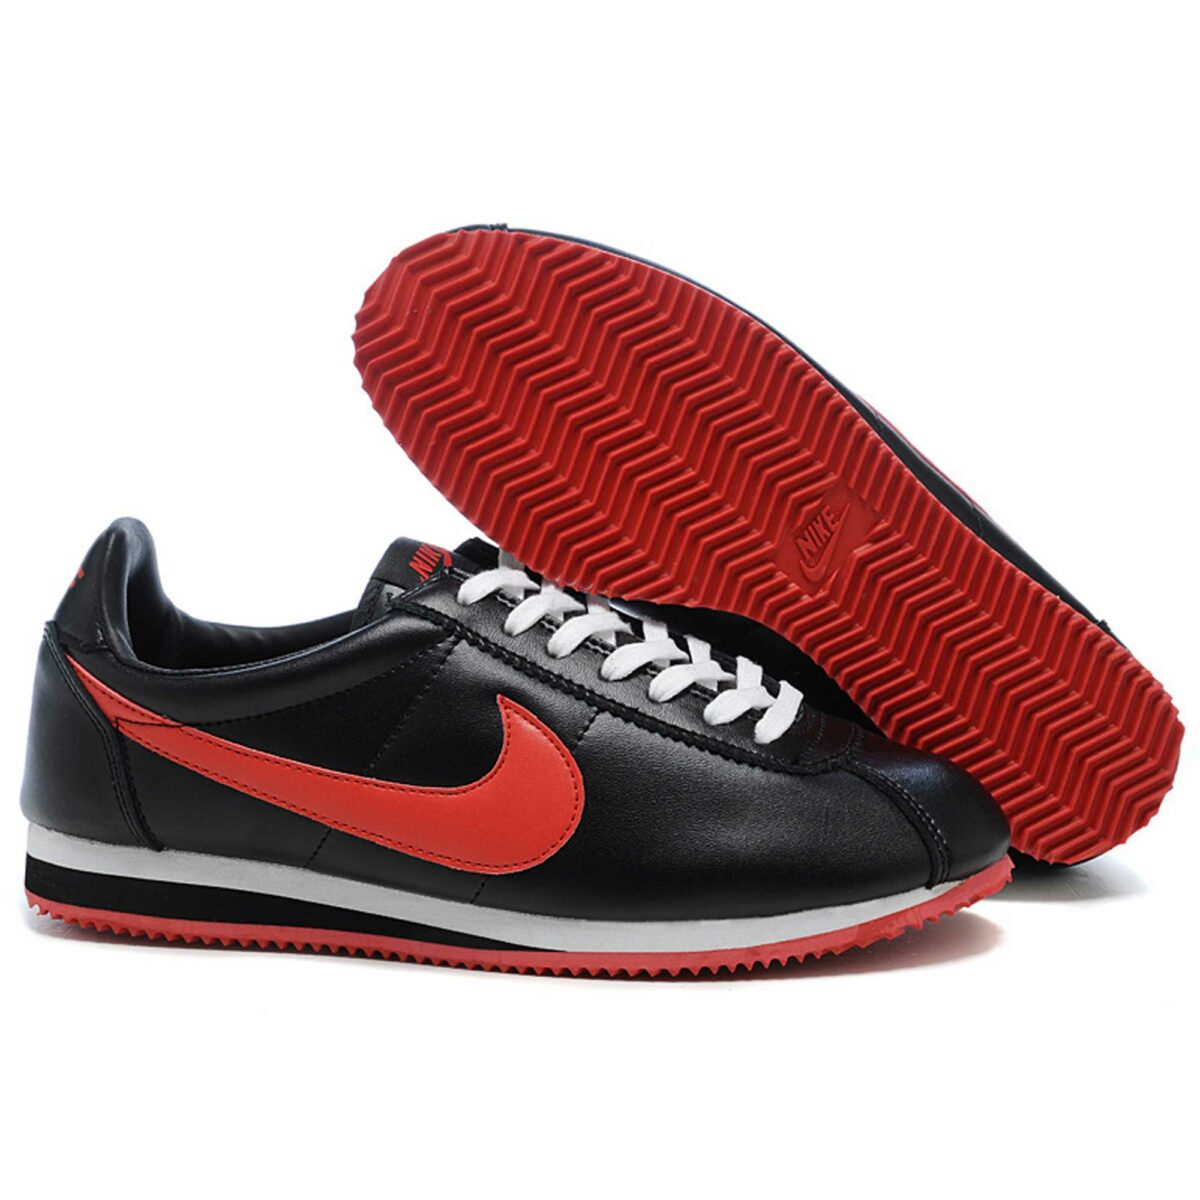 nike cortez leather black red white 349026_011 купить